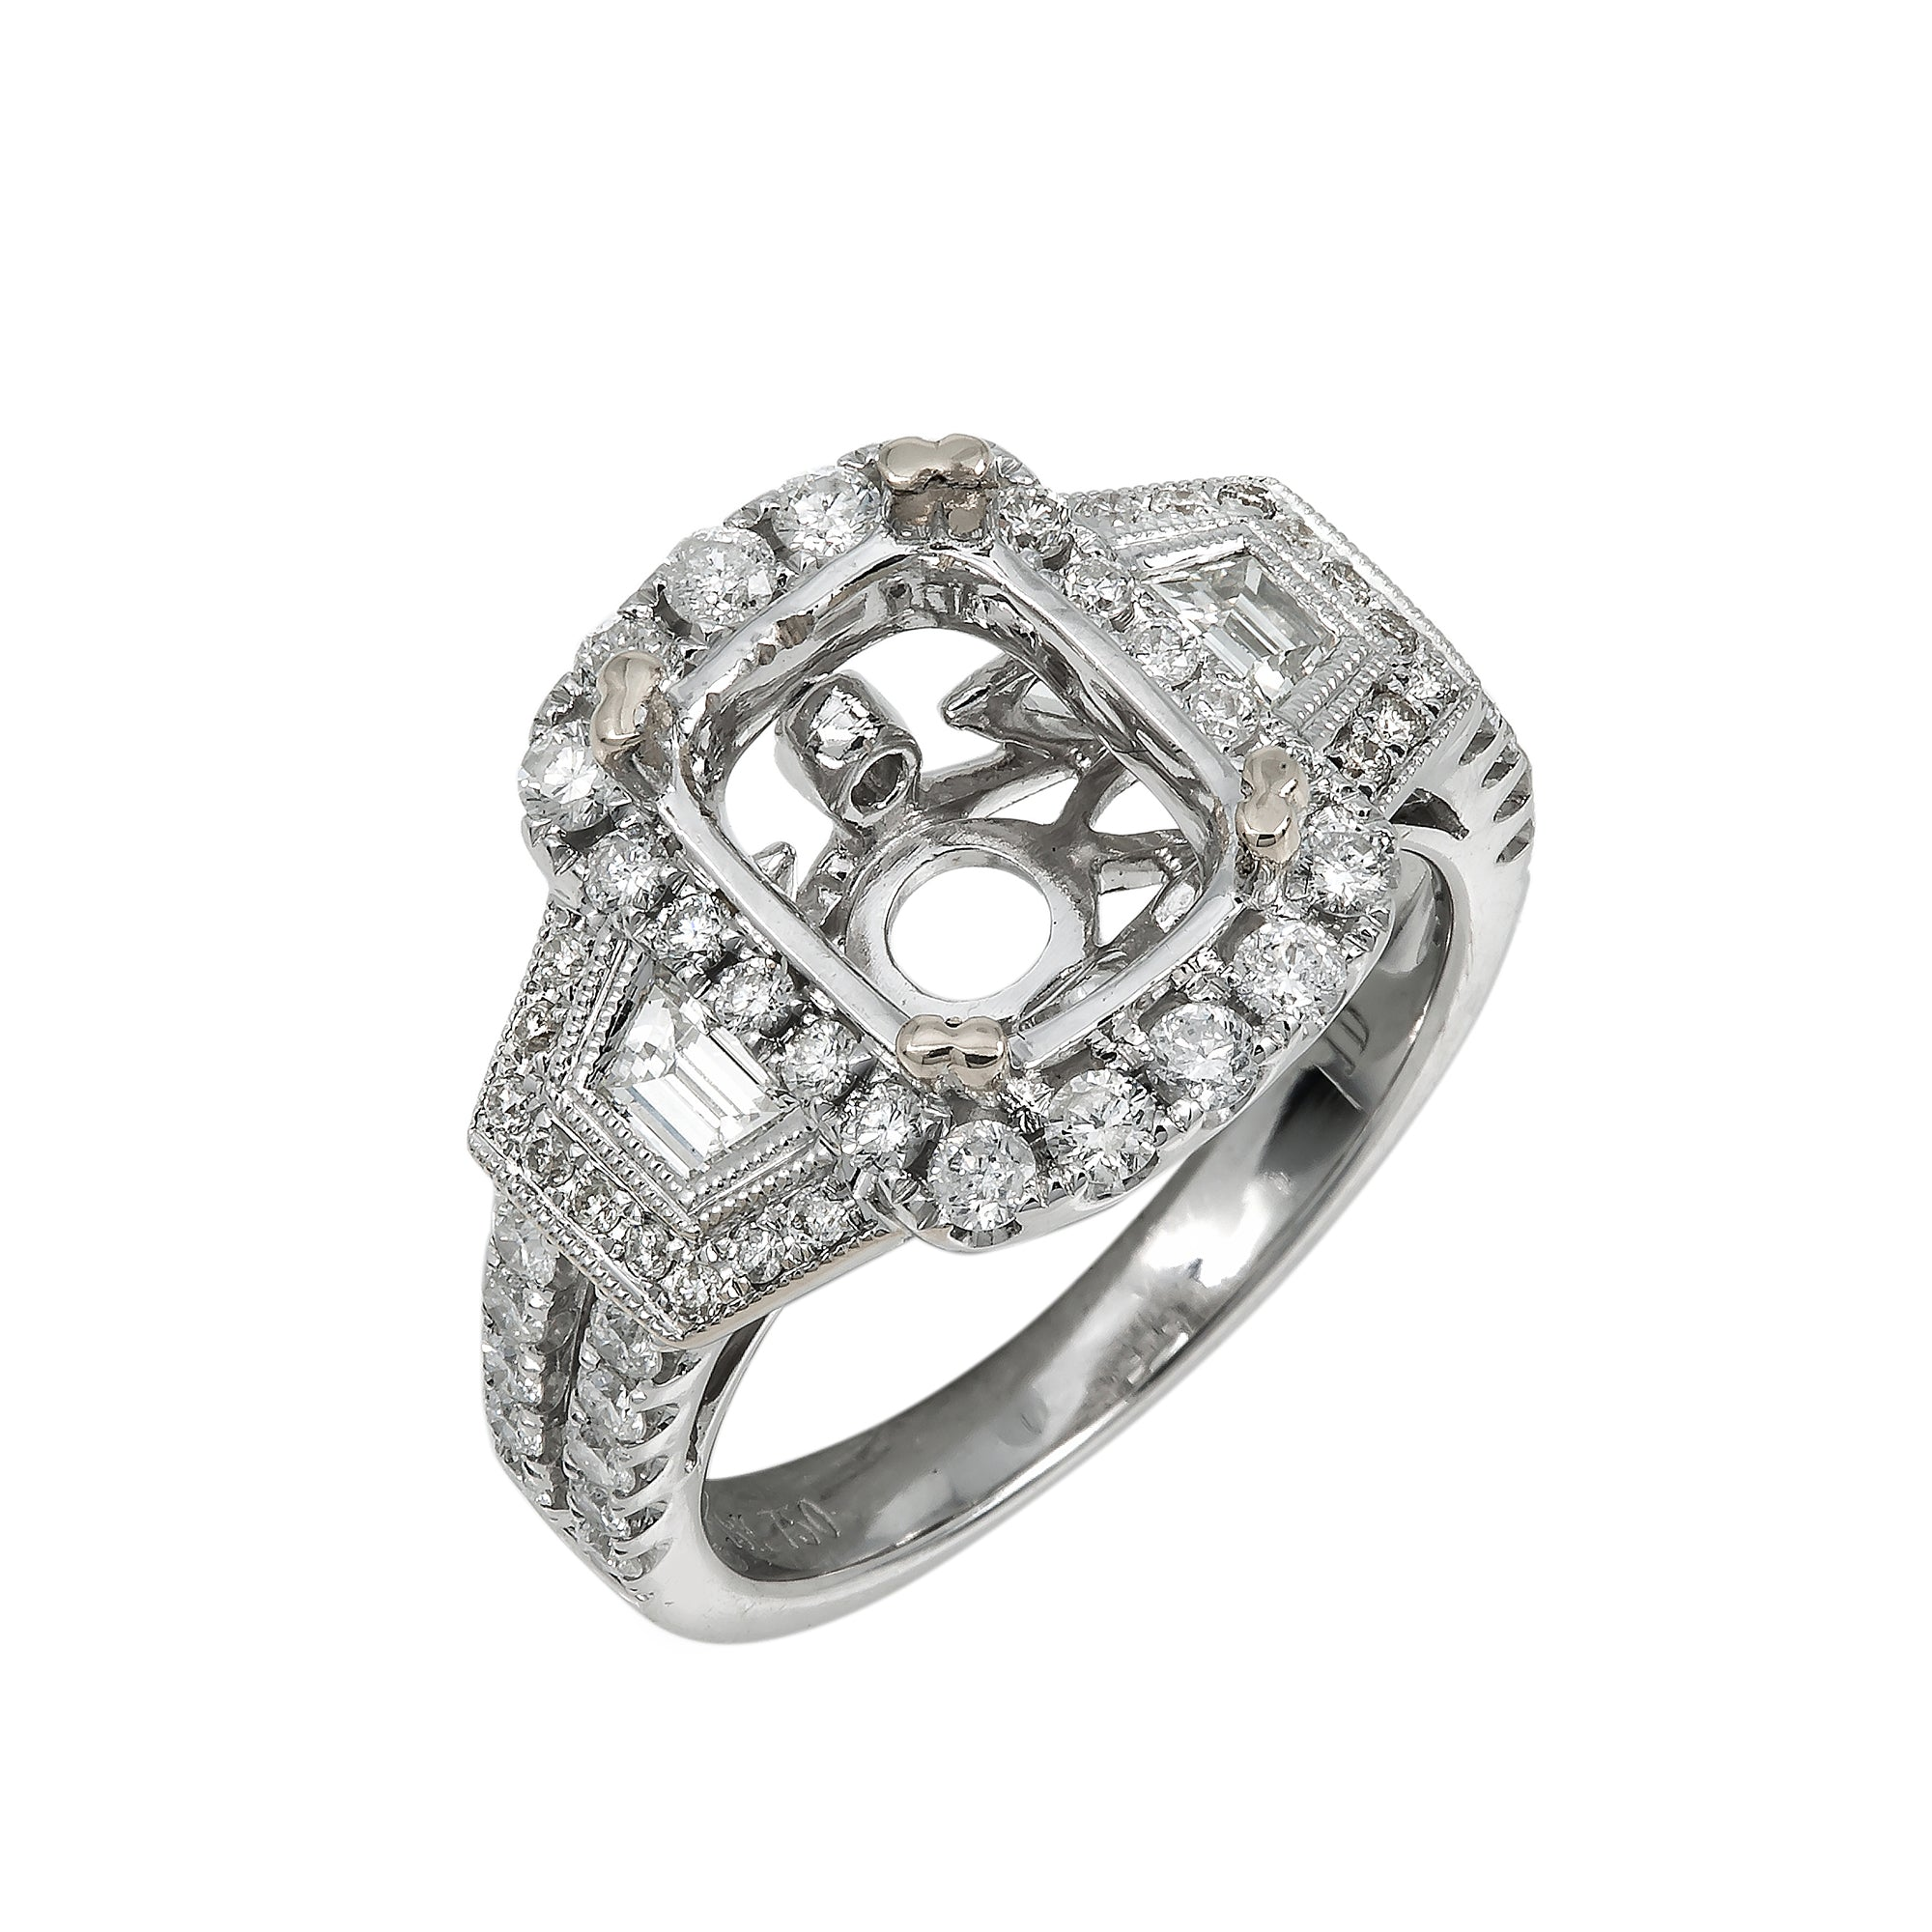 18K White Gold Diamond Engagement Semi-Mounting Women's Ring With 1.01 CT Diamonds